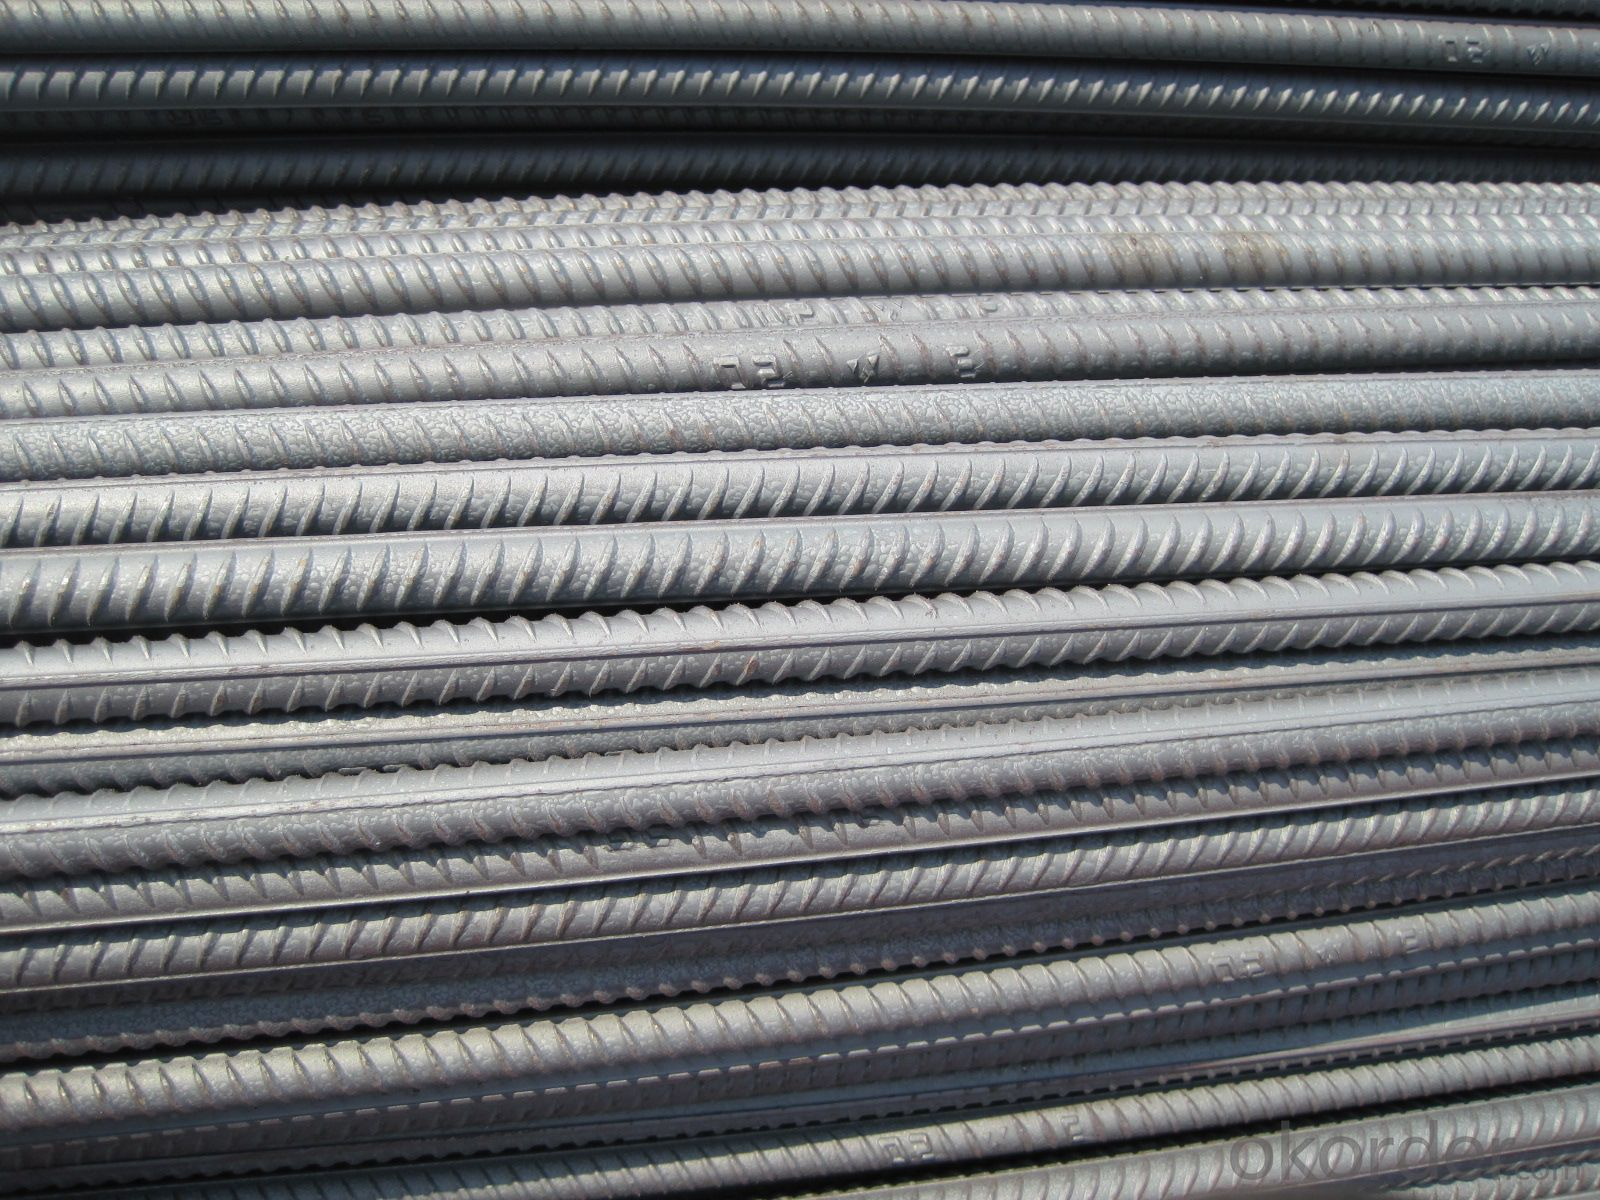 Hot Rolled Carbon Steel Deformed Bar 32mm with High Quality